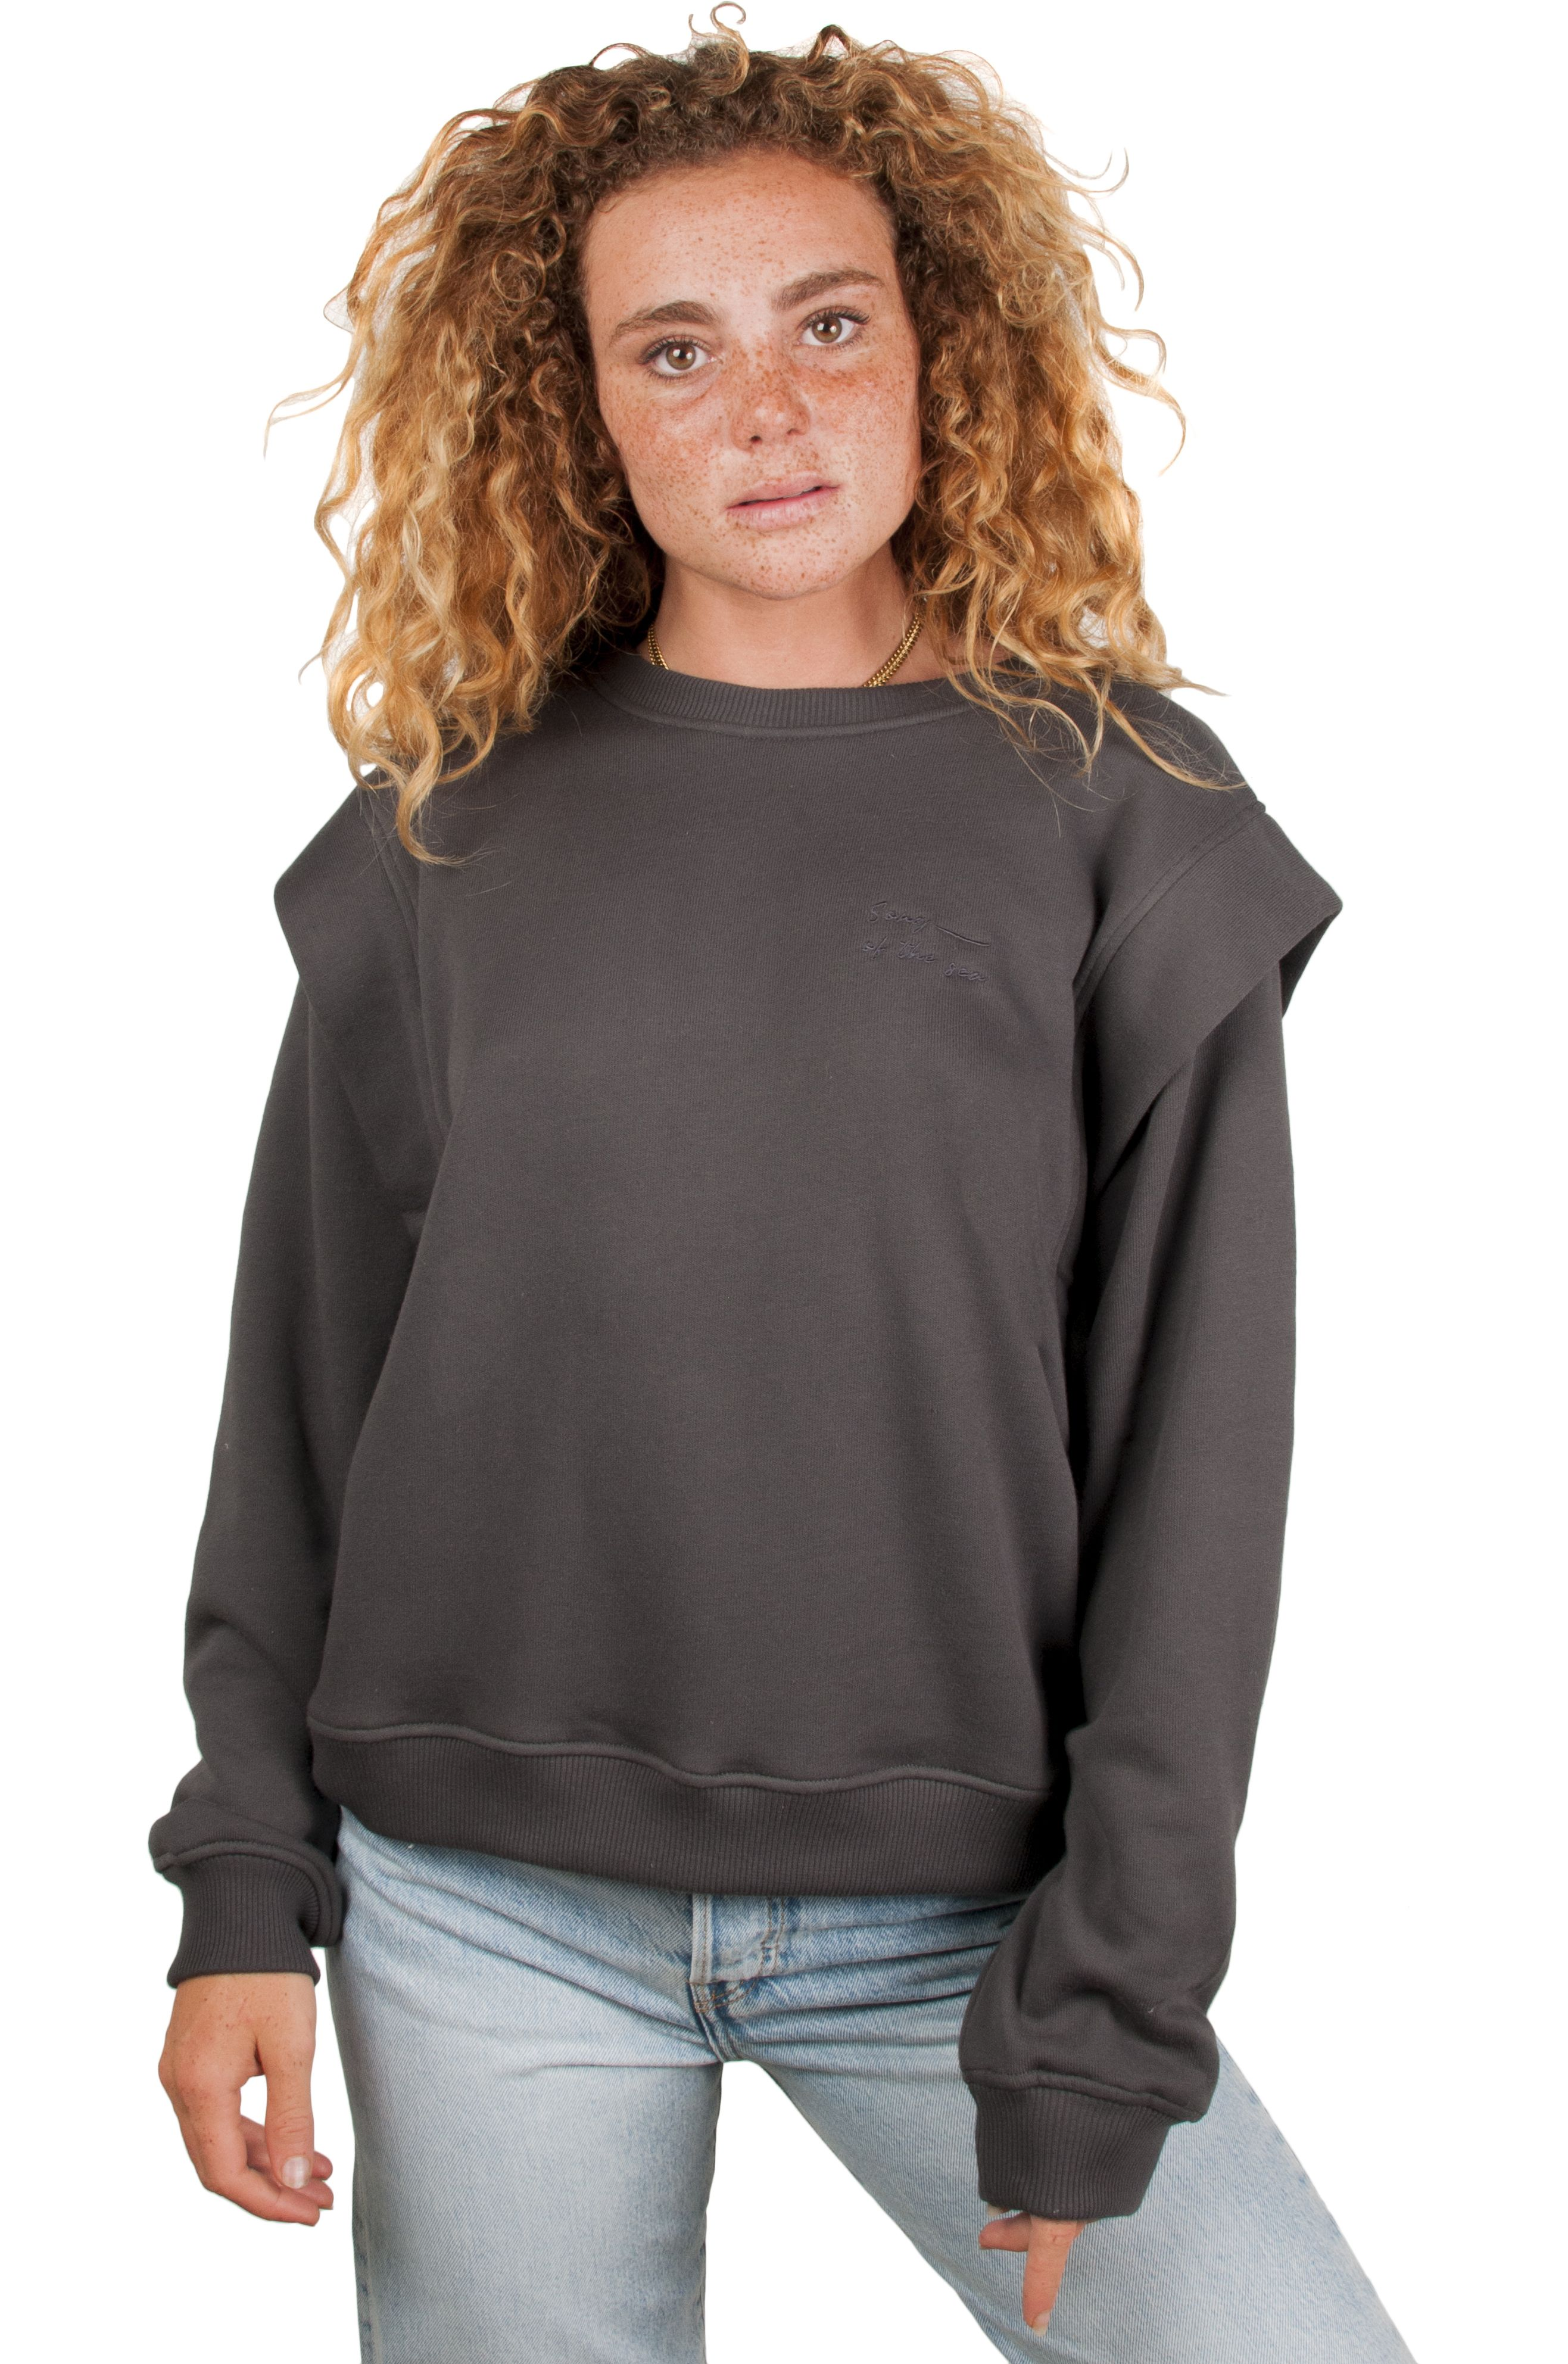 Sweat Basica Ericeira Surf Skate COOL Charcoal